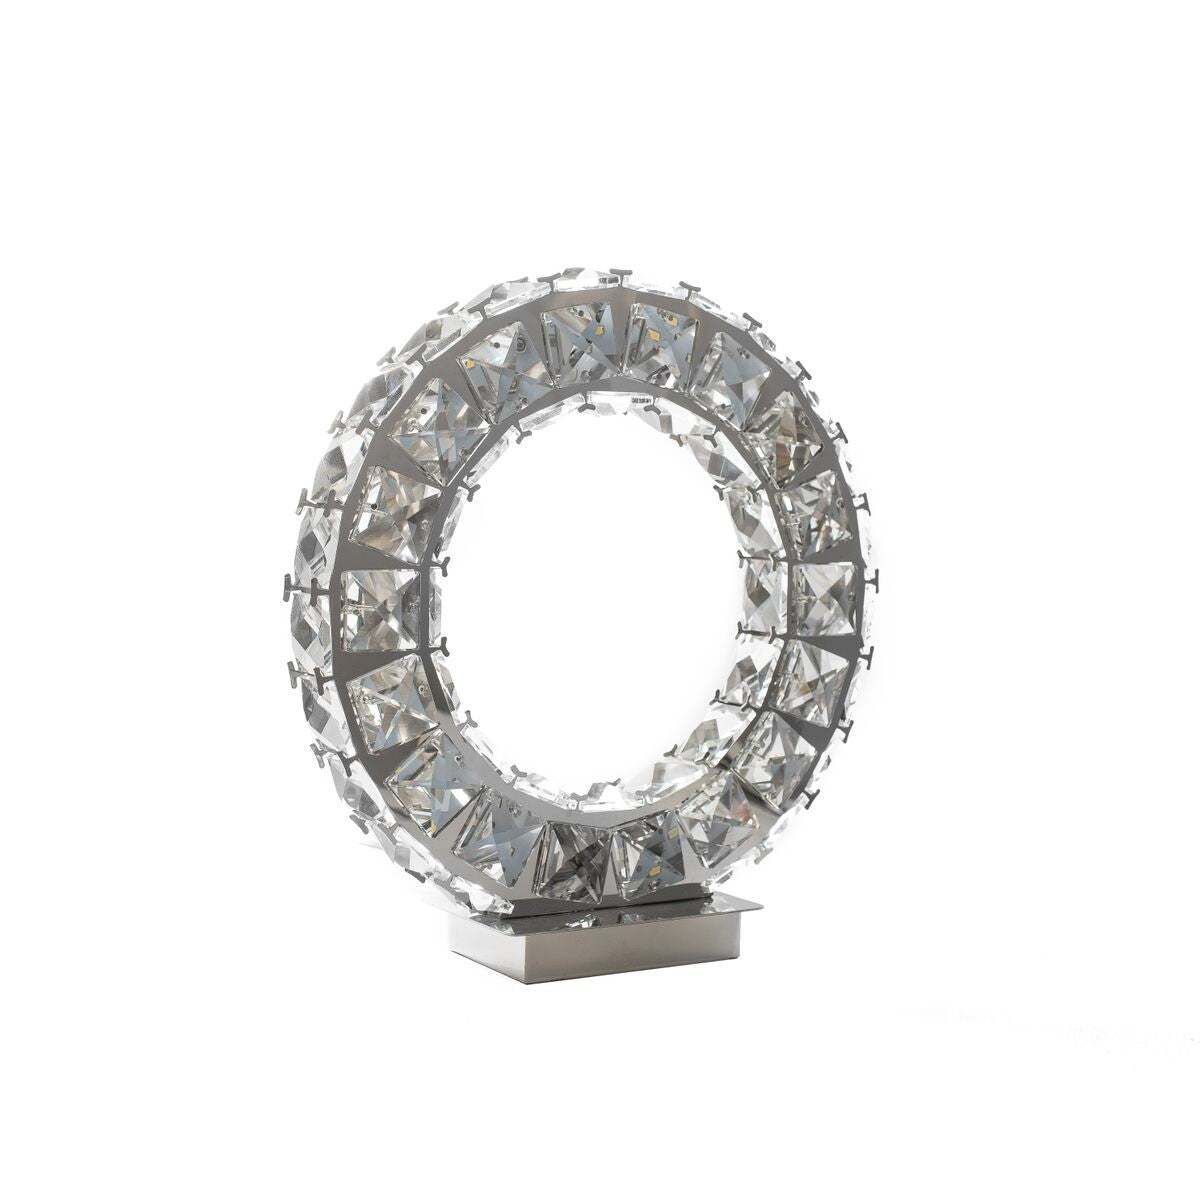 RING LED SMALL- TABLE LAMP